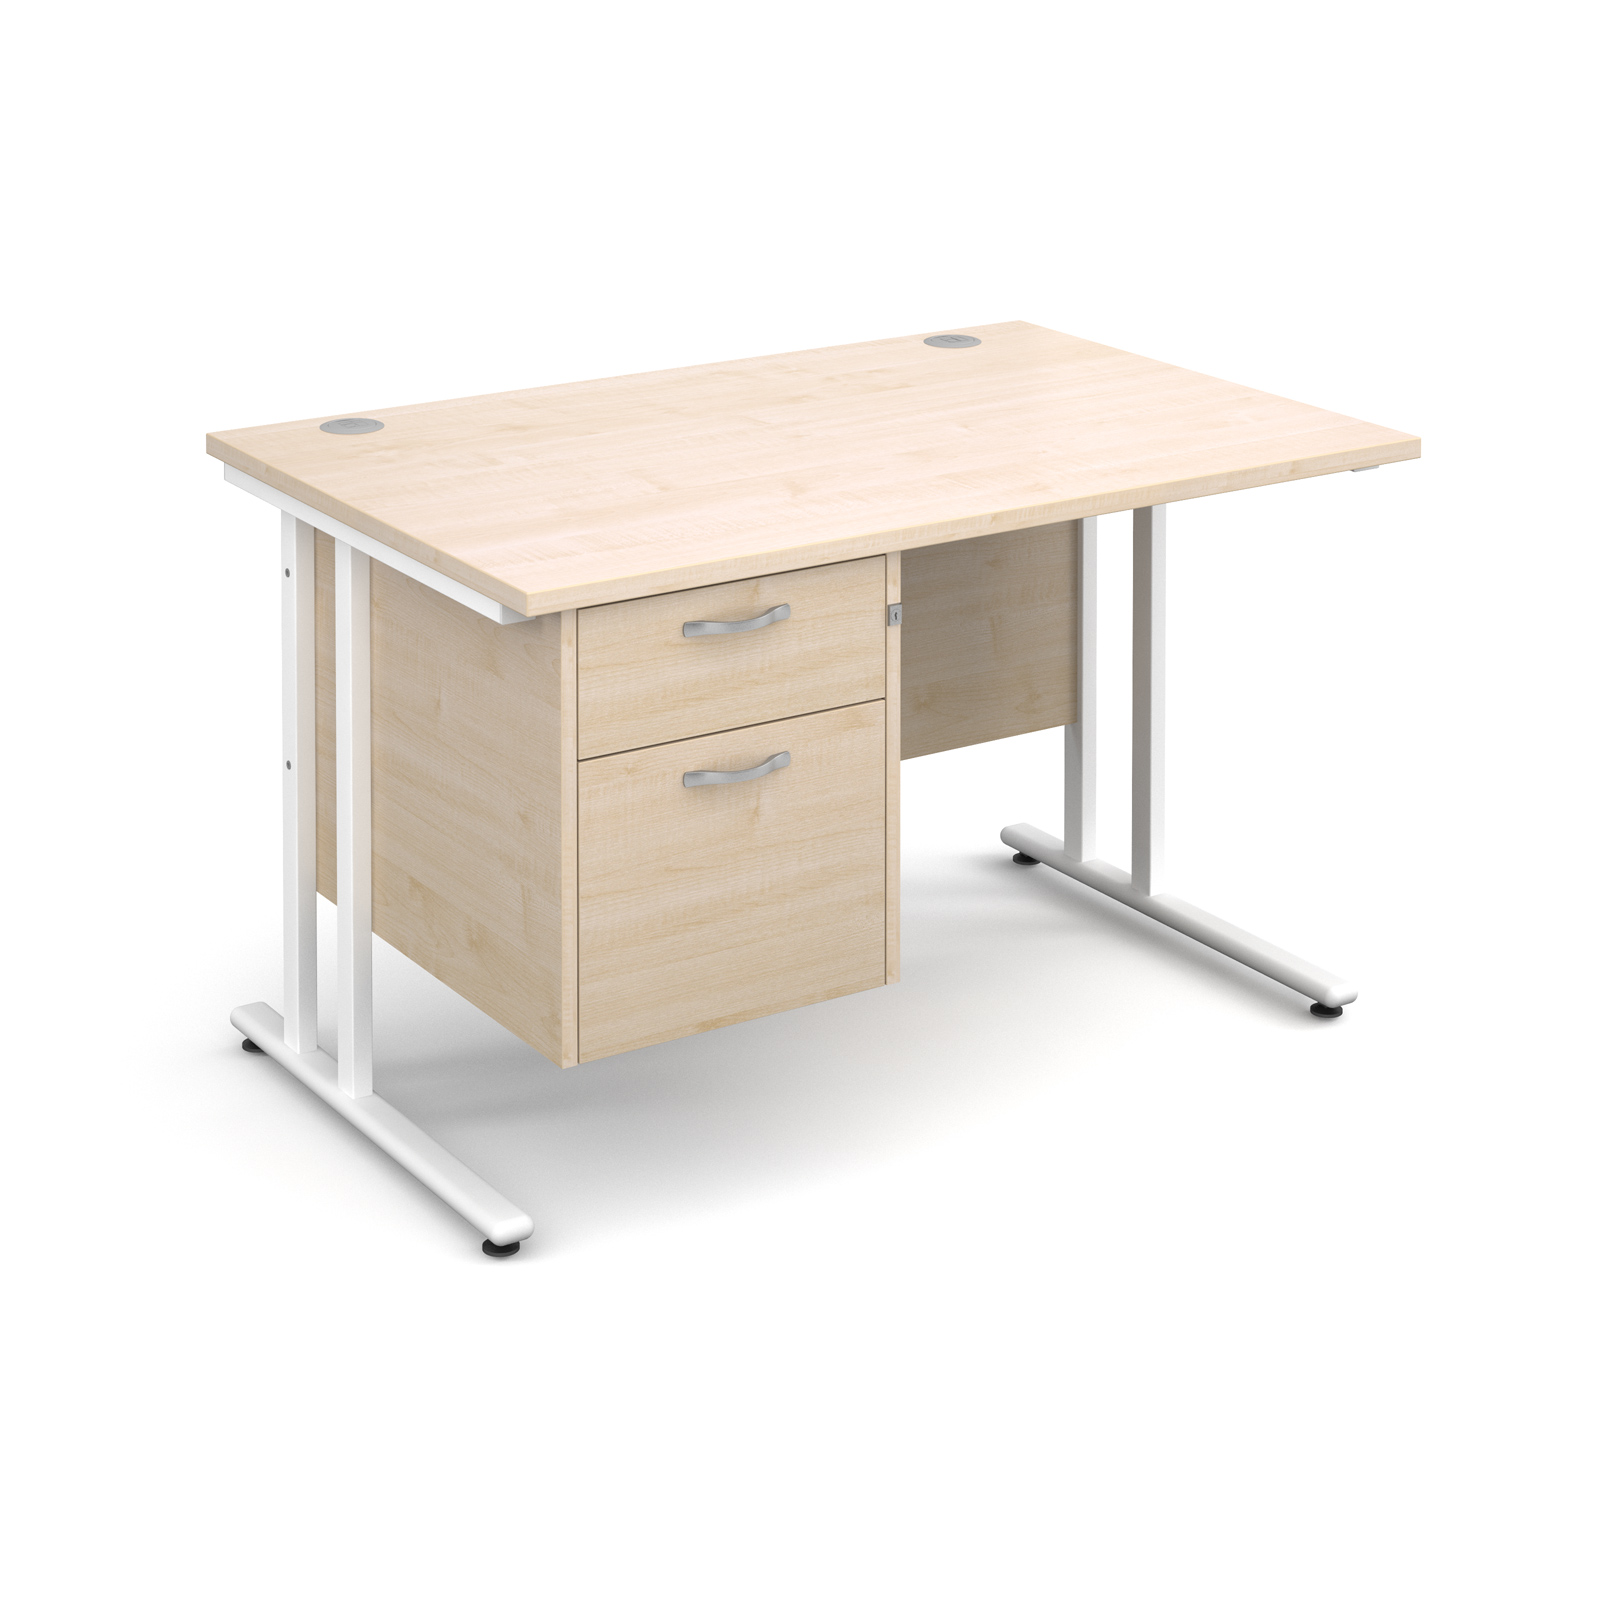 Dams Maestro 25 WL Maple Desk | Straight Single Pedestal